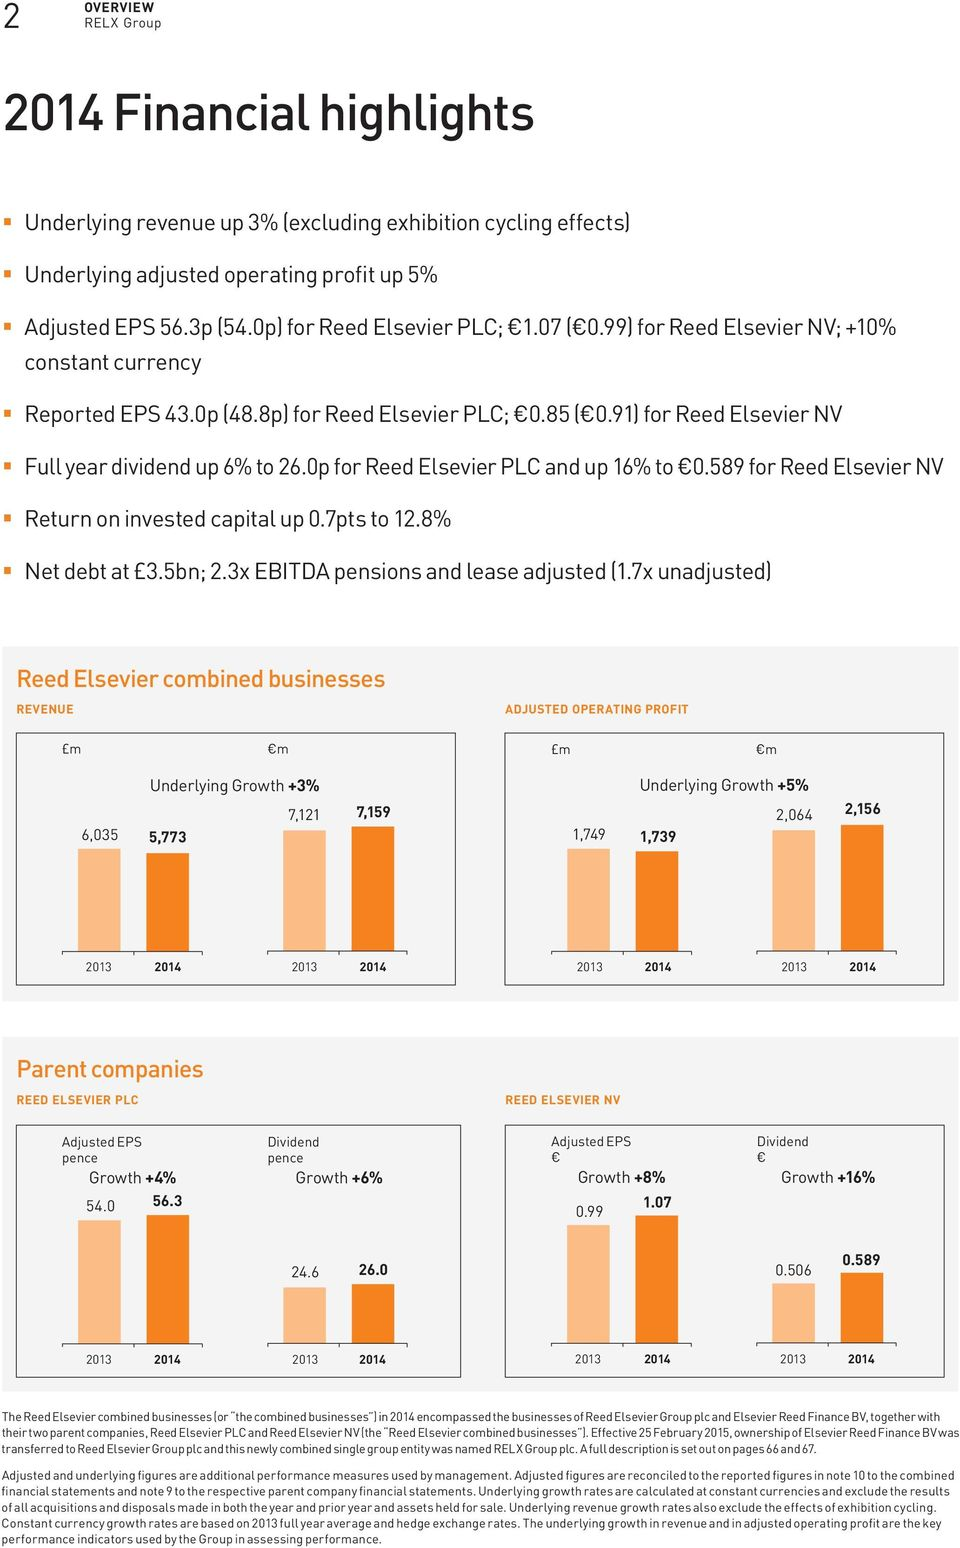 0p for Reed Elsevier PLC and up 16% to 0.589 for Reed Elsevier NV Return on invested capital up 0.7pts to 12.8% Net debt at 3.5bn; 2.3x EBITDA pensions and lease adjusted (1.